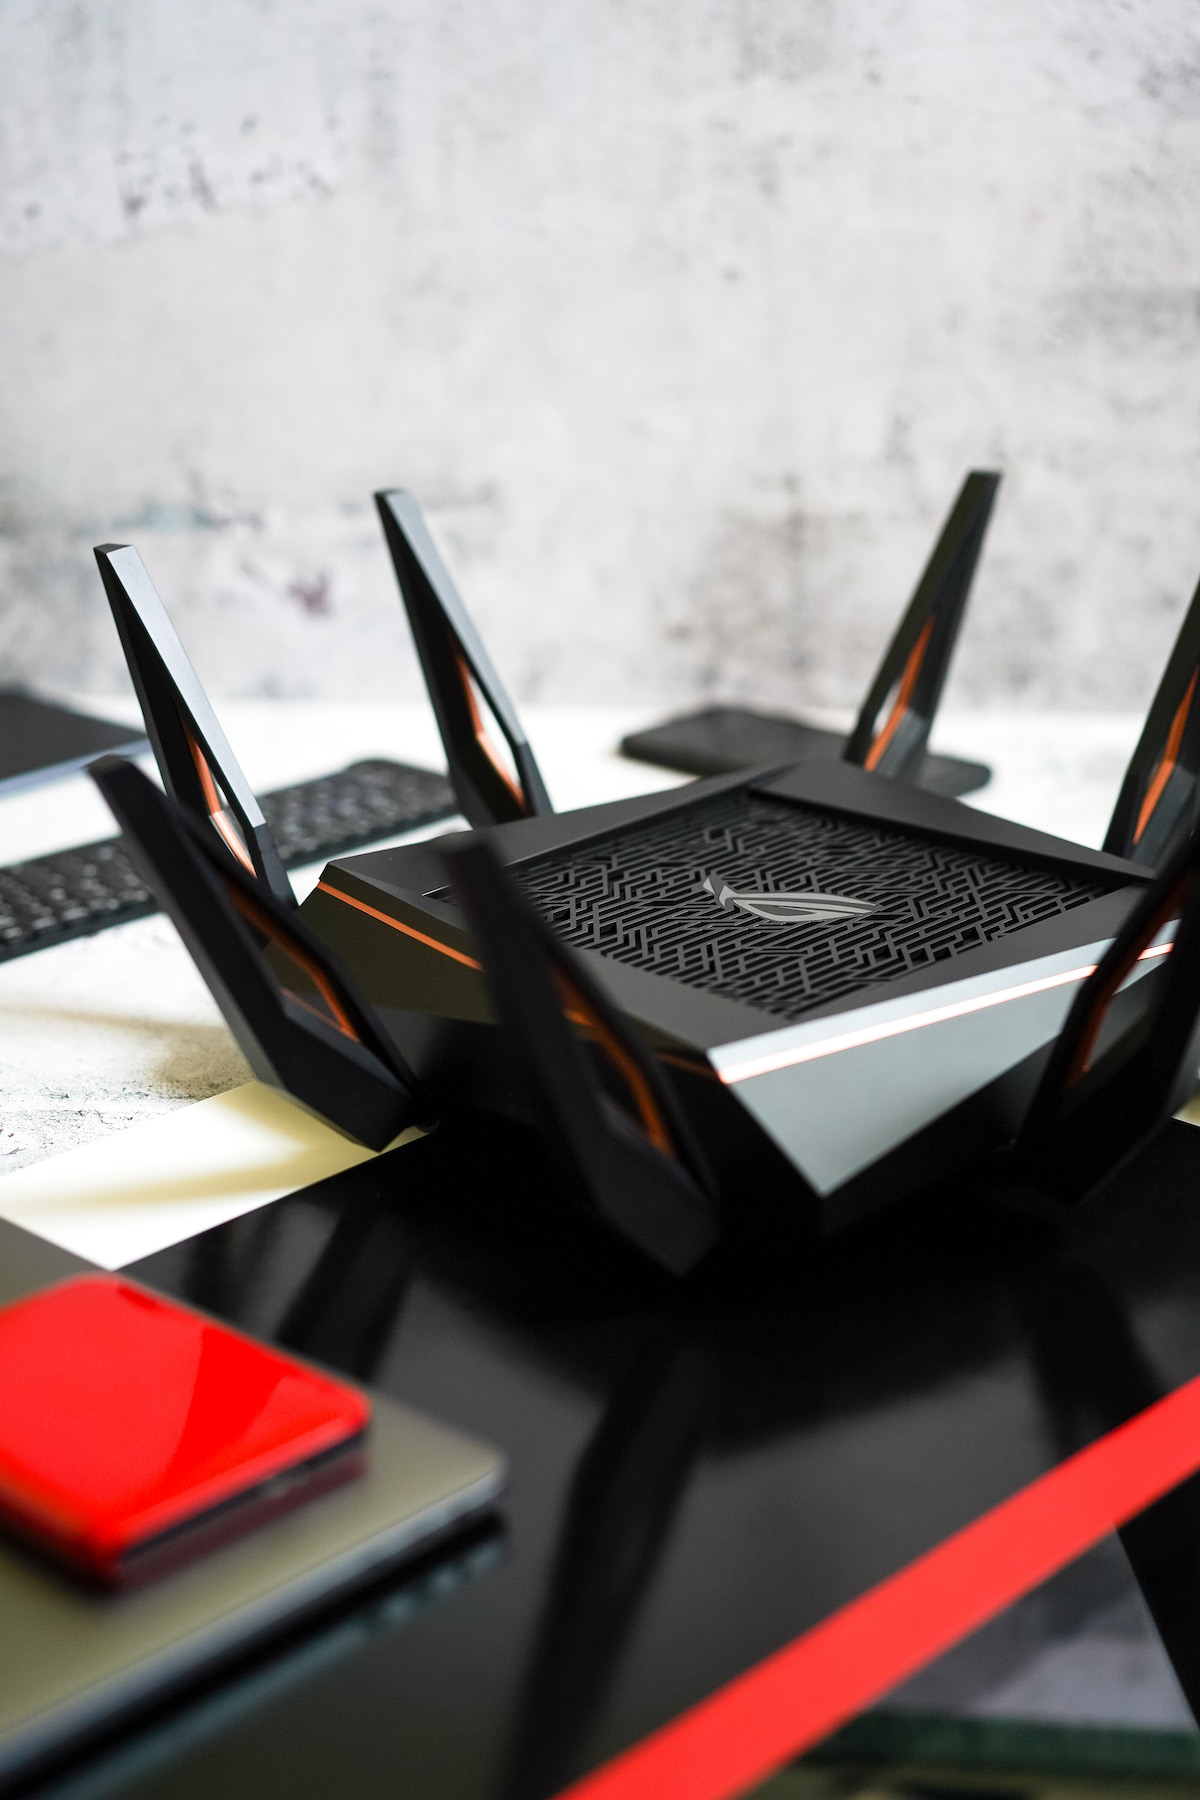 Win Faster with PLDT Home Fibr-powered WiFi 6 Gaming Router